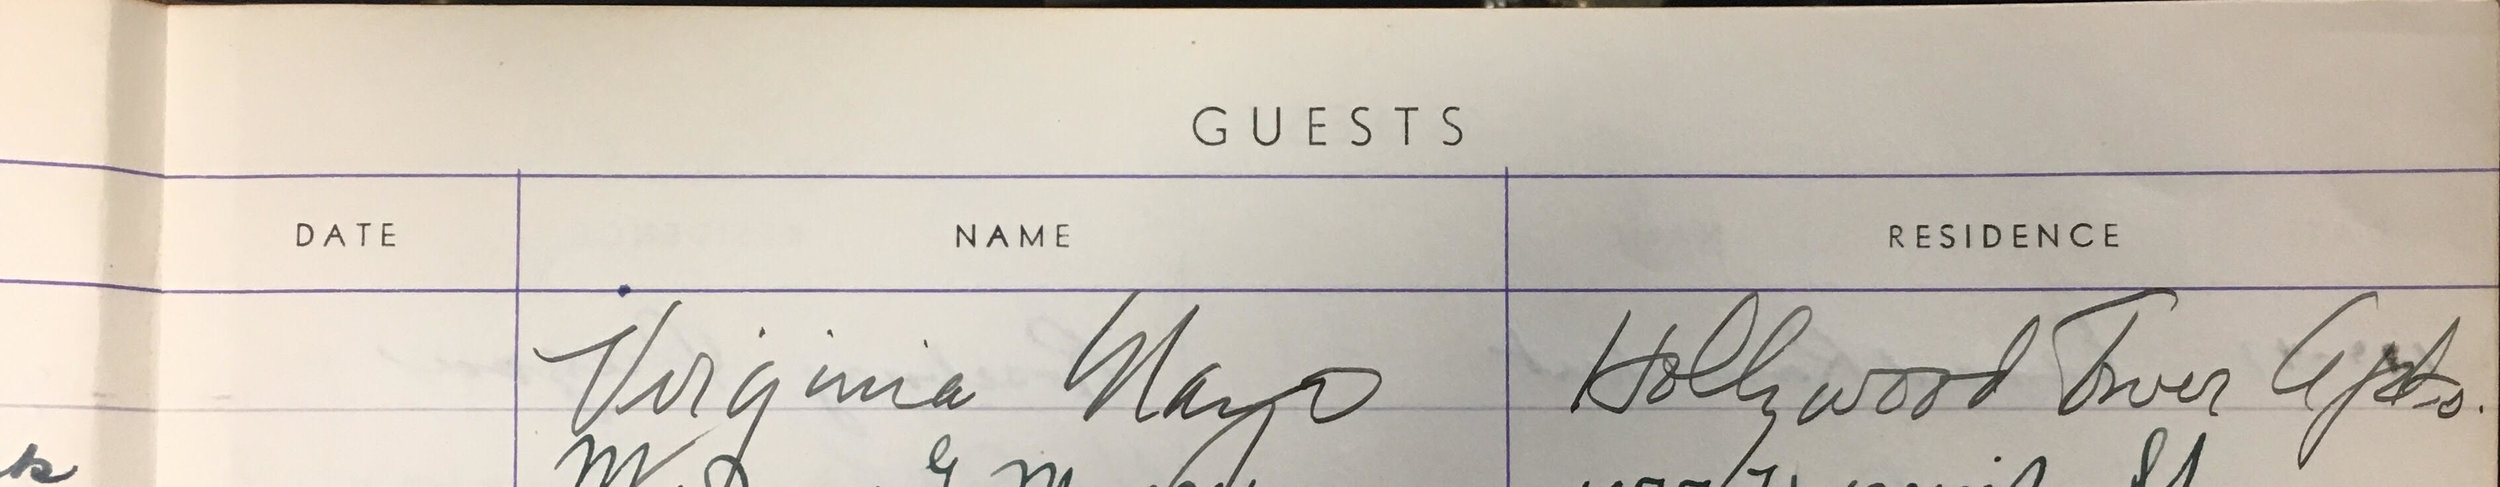 Virginia Mayo's undated signature in Joseff's Guest Book from 1946 (based on surrounding signature dates).